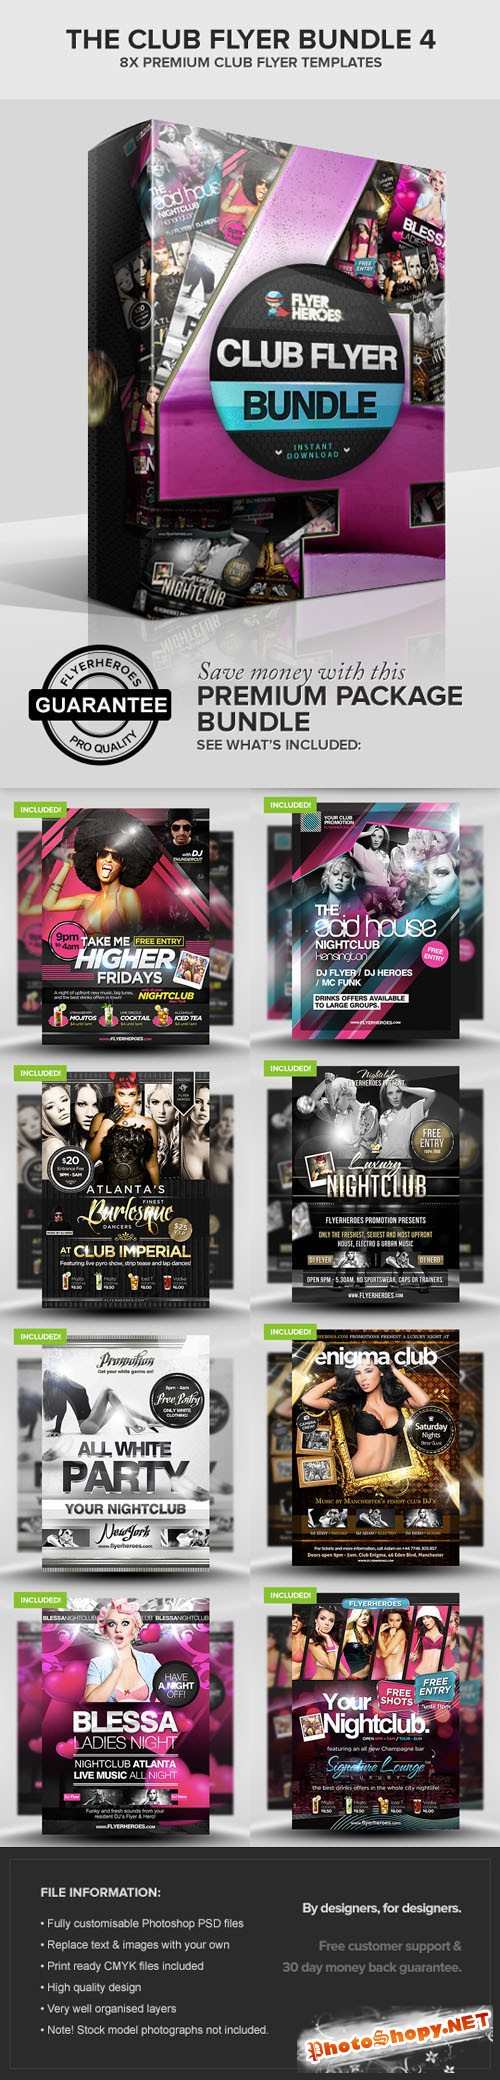 The Club Flyer Bundle 4